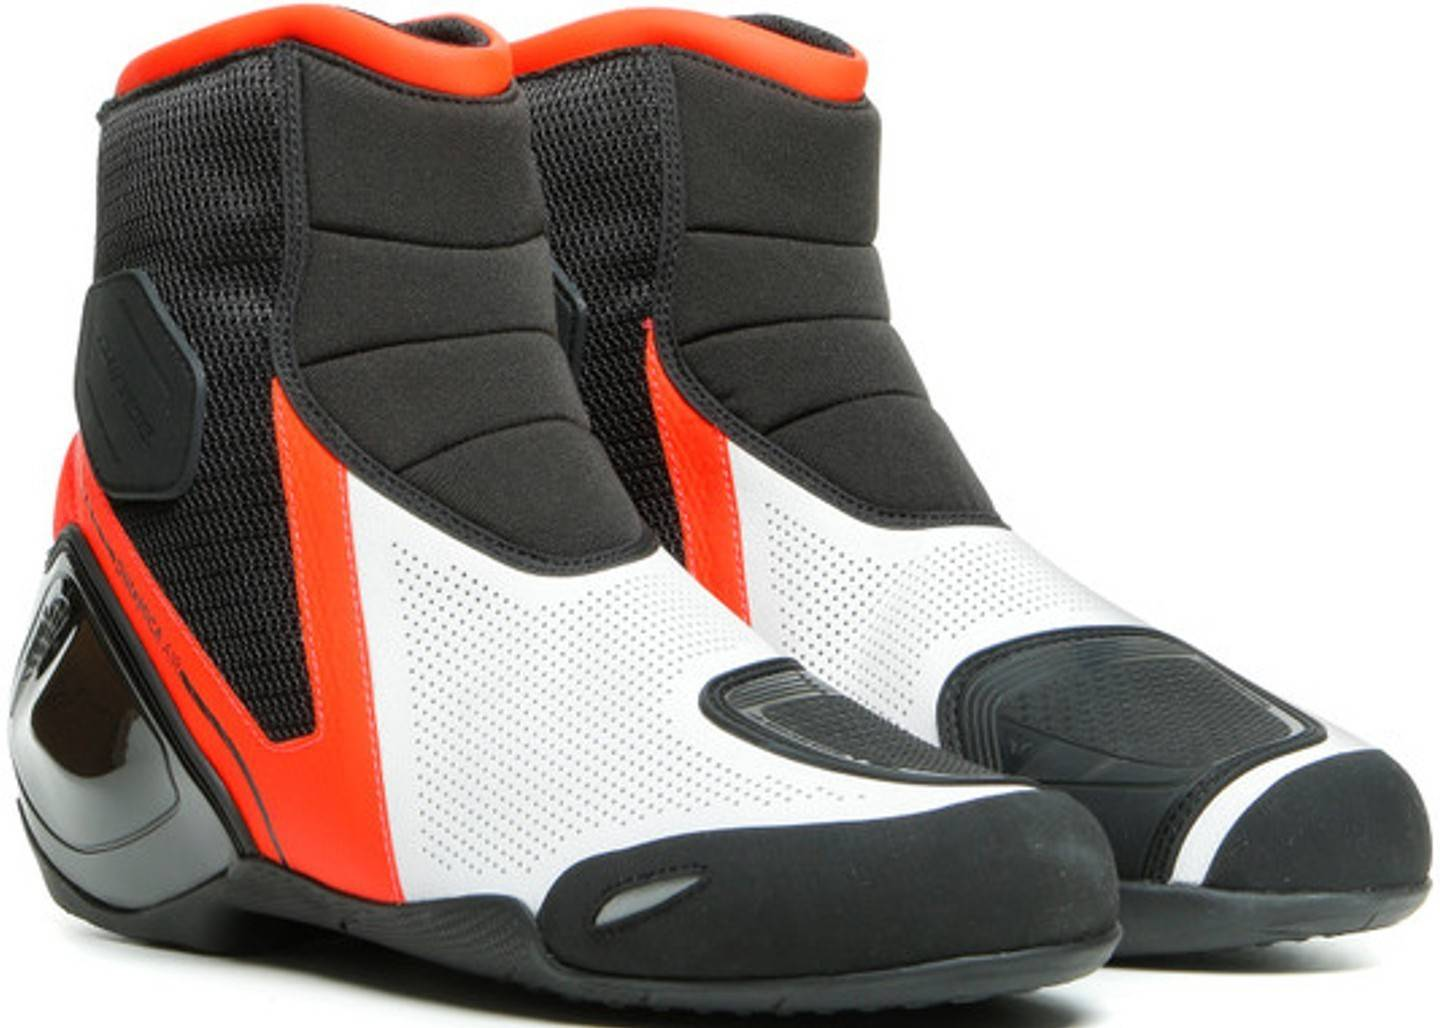 Dainese Dinamica Air Motorcycle Shoes  - Size: 41